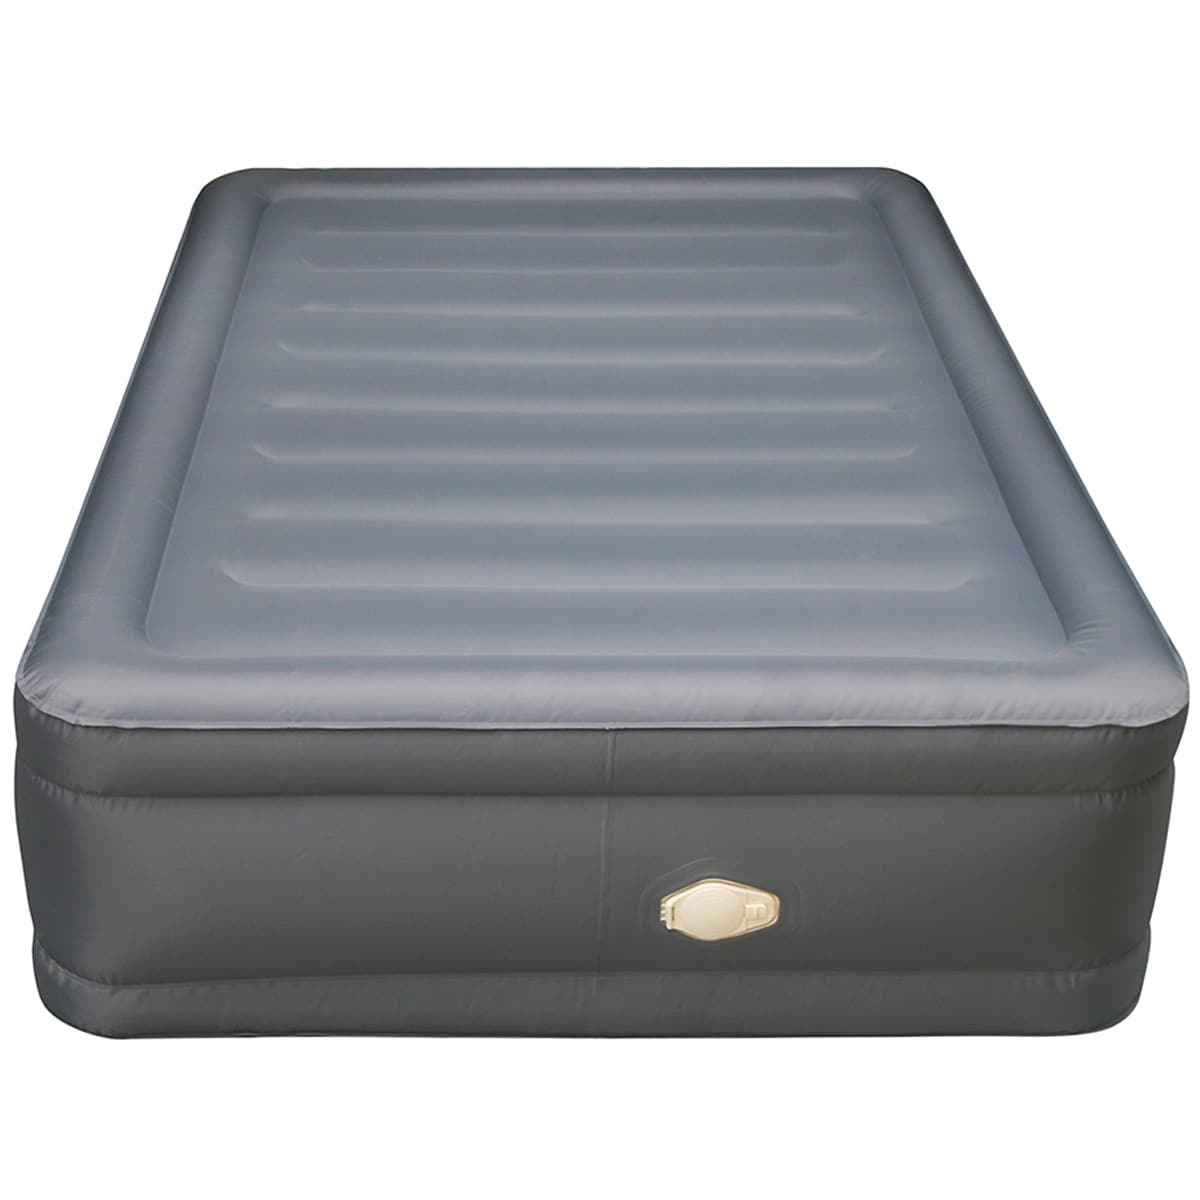 Altimair Full Size Air Mattress With Memory Foam Topper Free Shipping Today 17411496